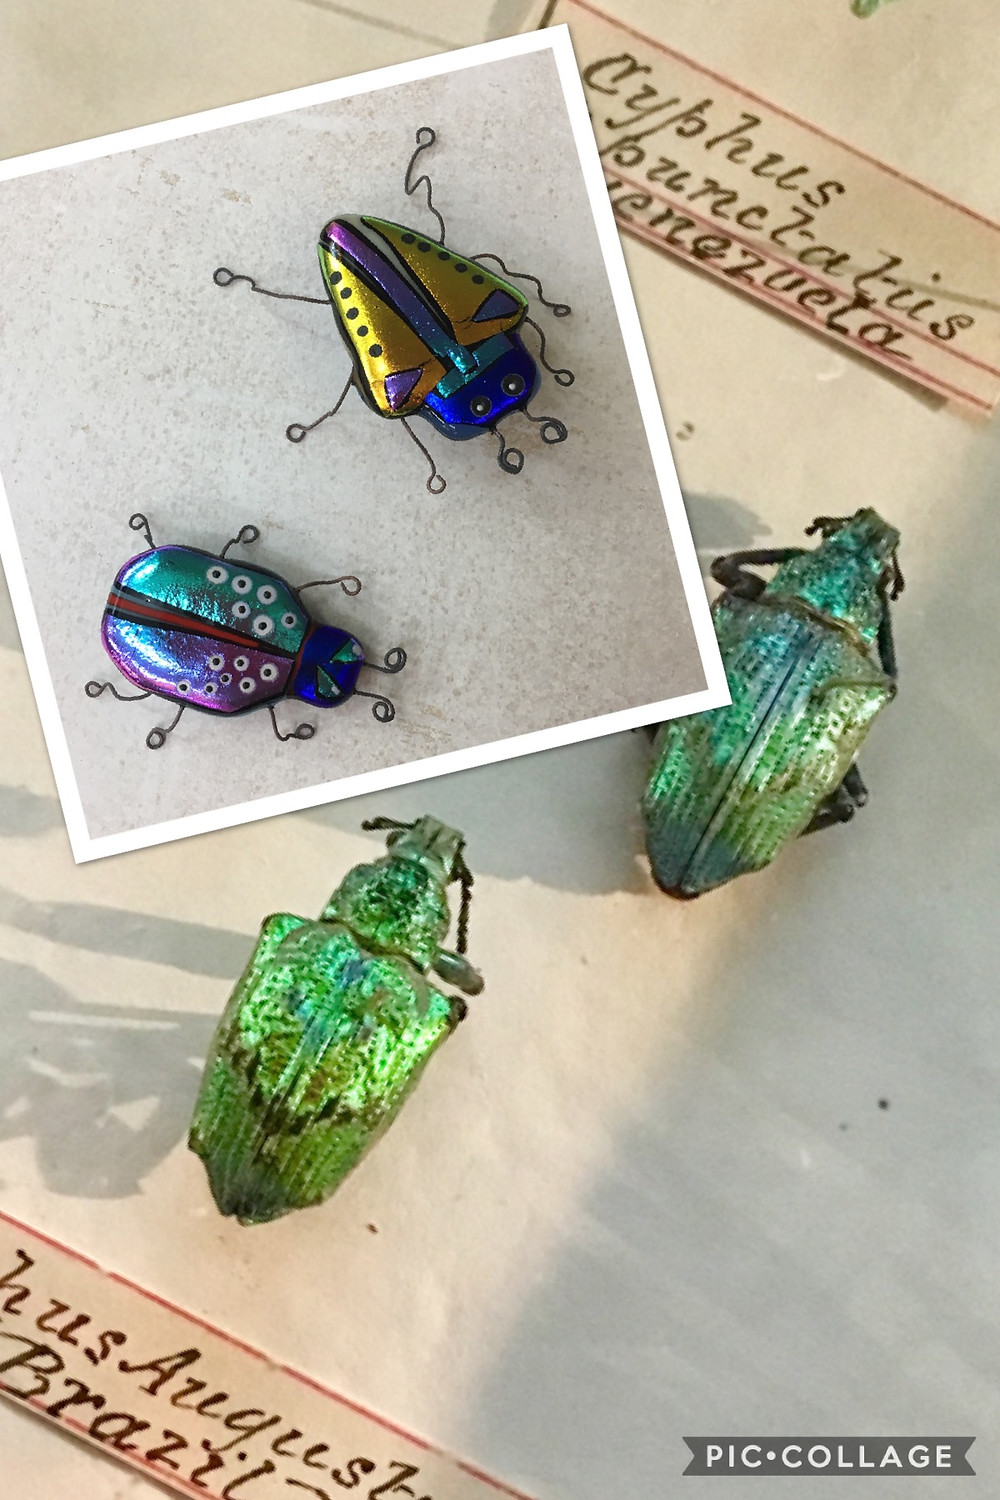 The Jewellery Boat Blog | Fused Glass Beetles | Eleanor Designs 2017